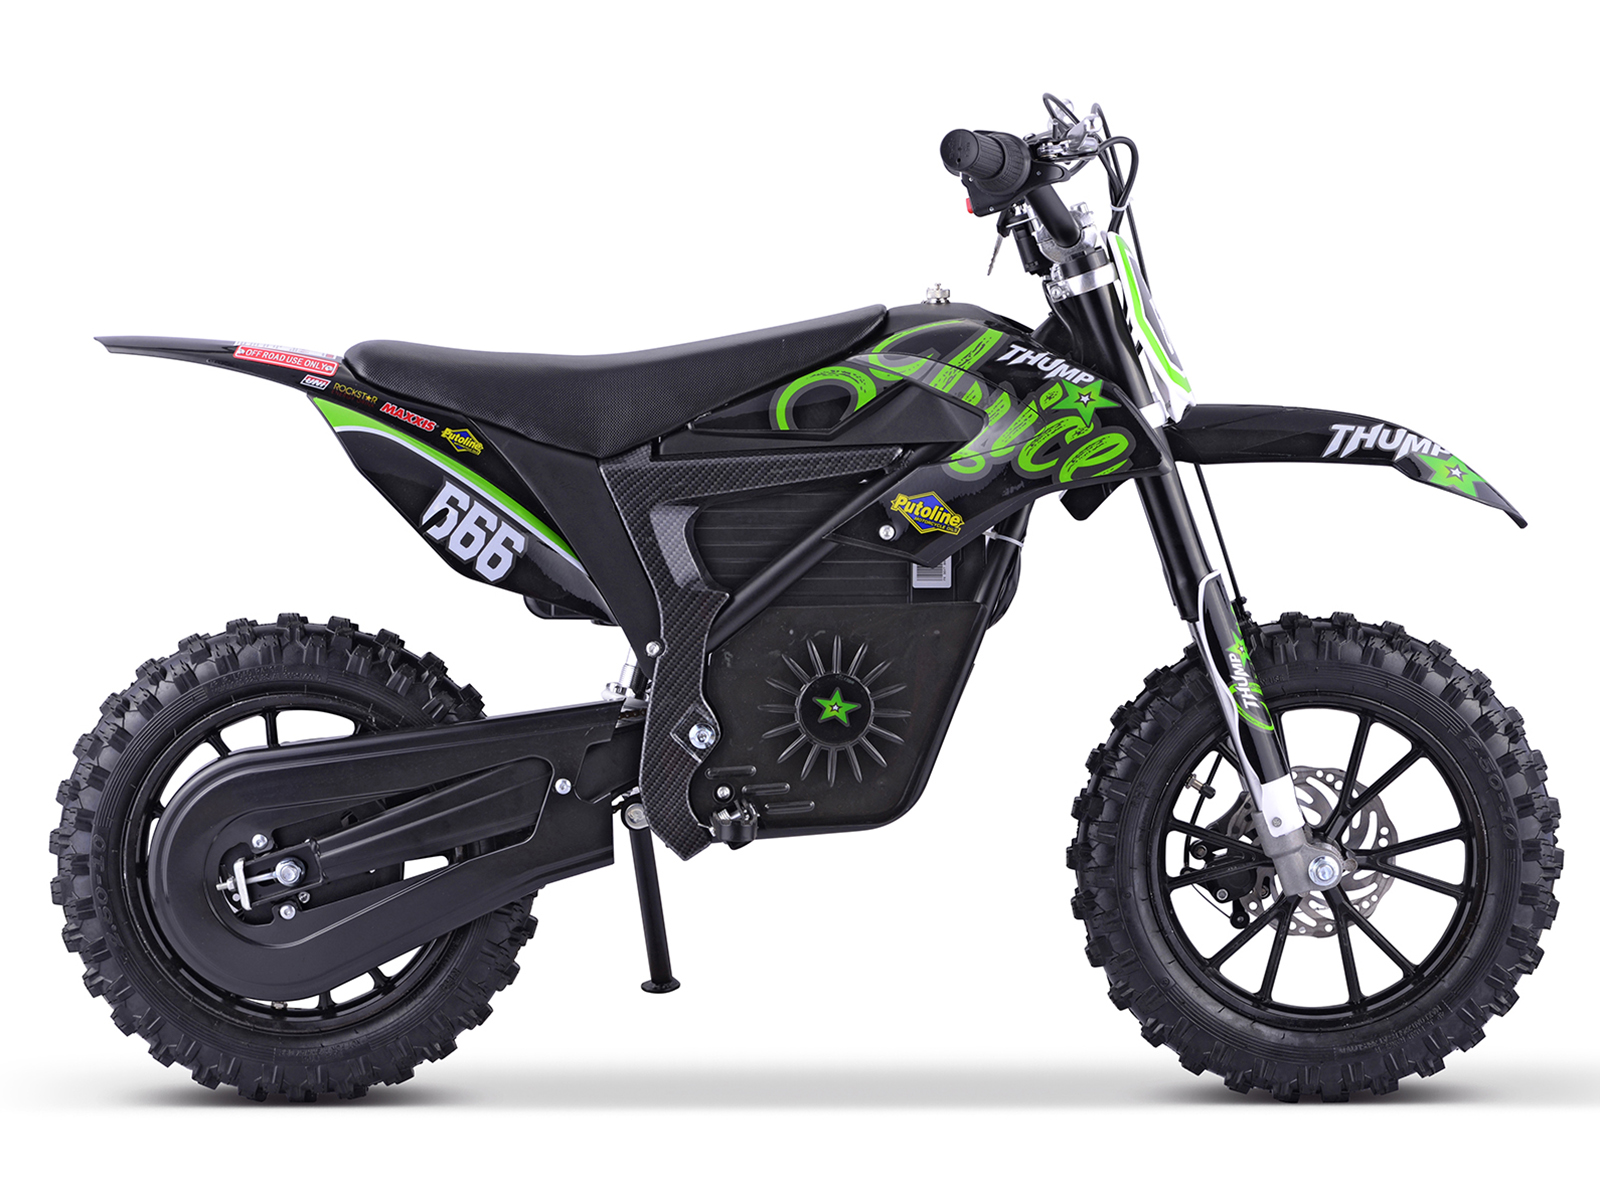 QUADS AND OFF ROAD BIKES NORTHER IRELAND